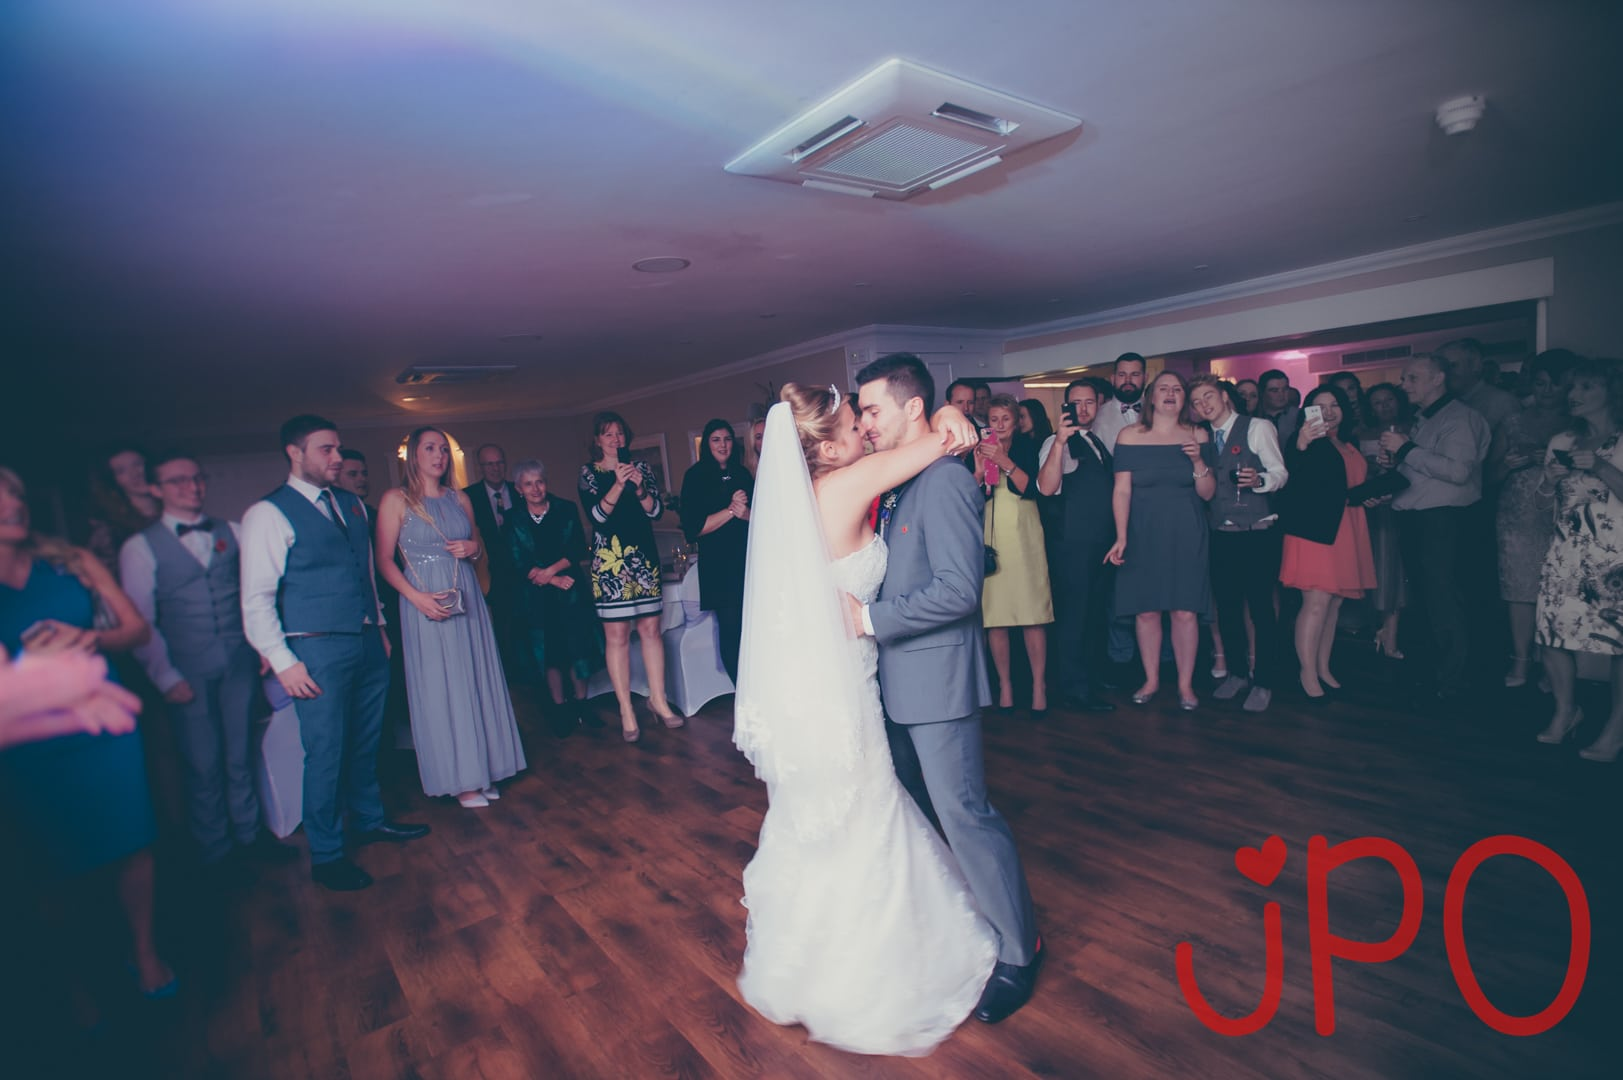 Sheene Mill Royston Wedding Photography – John Paul ODonnell